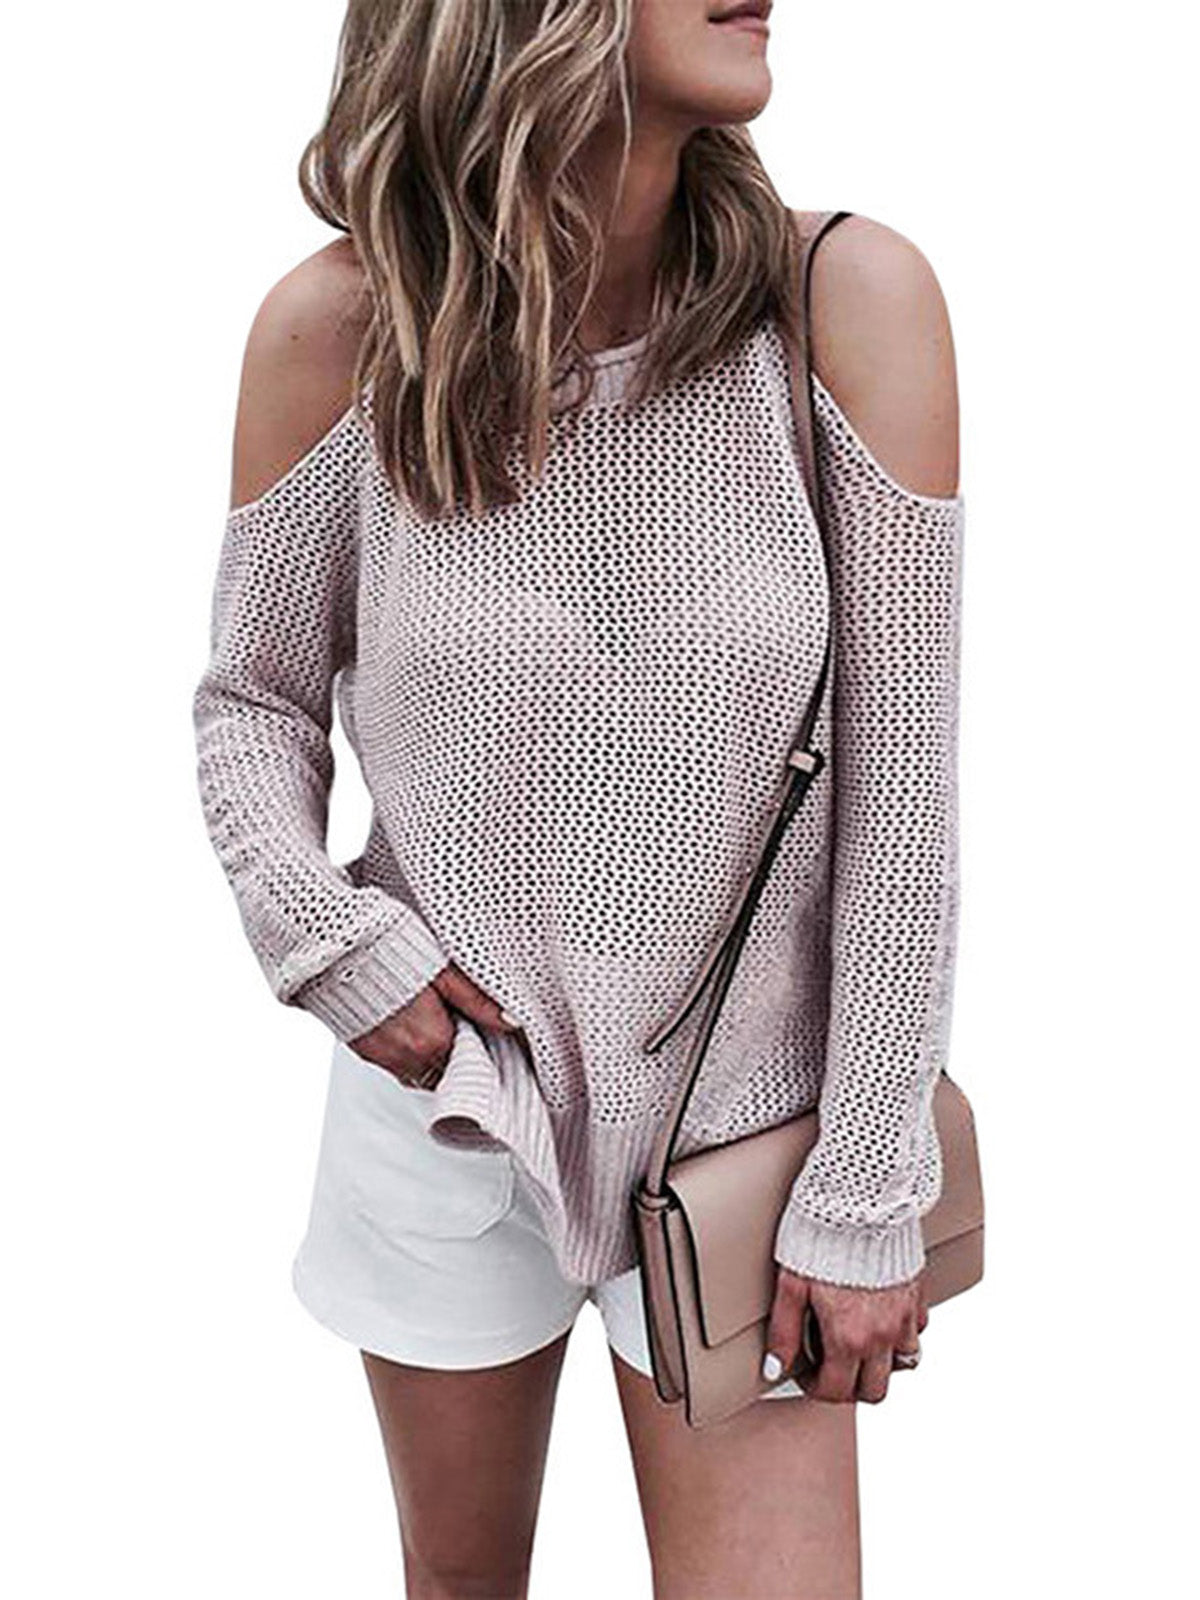 6bc08560b6 Women Round Neck Long Sleeve Hollow Off Shoulder Knit Sweater. Women Round  Neck Long Sleeve Hollow Off Shoulder Knit Sweater